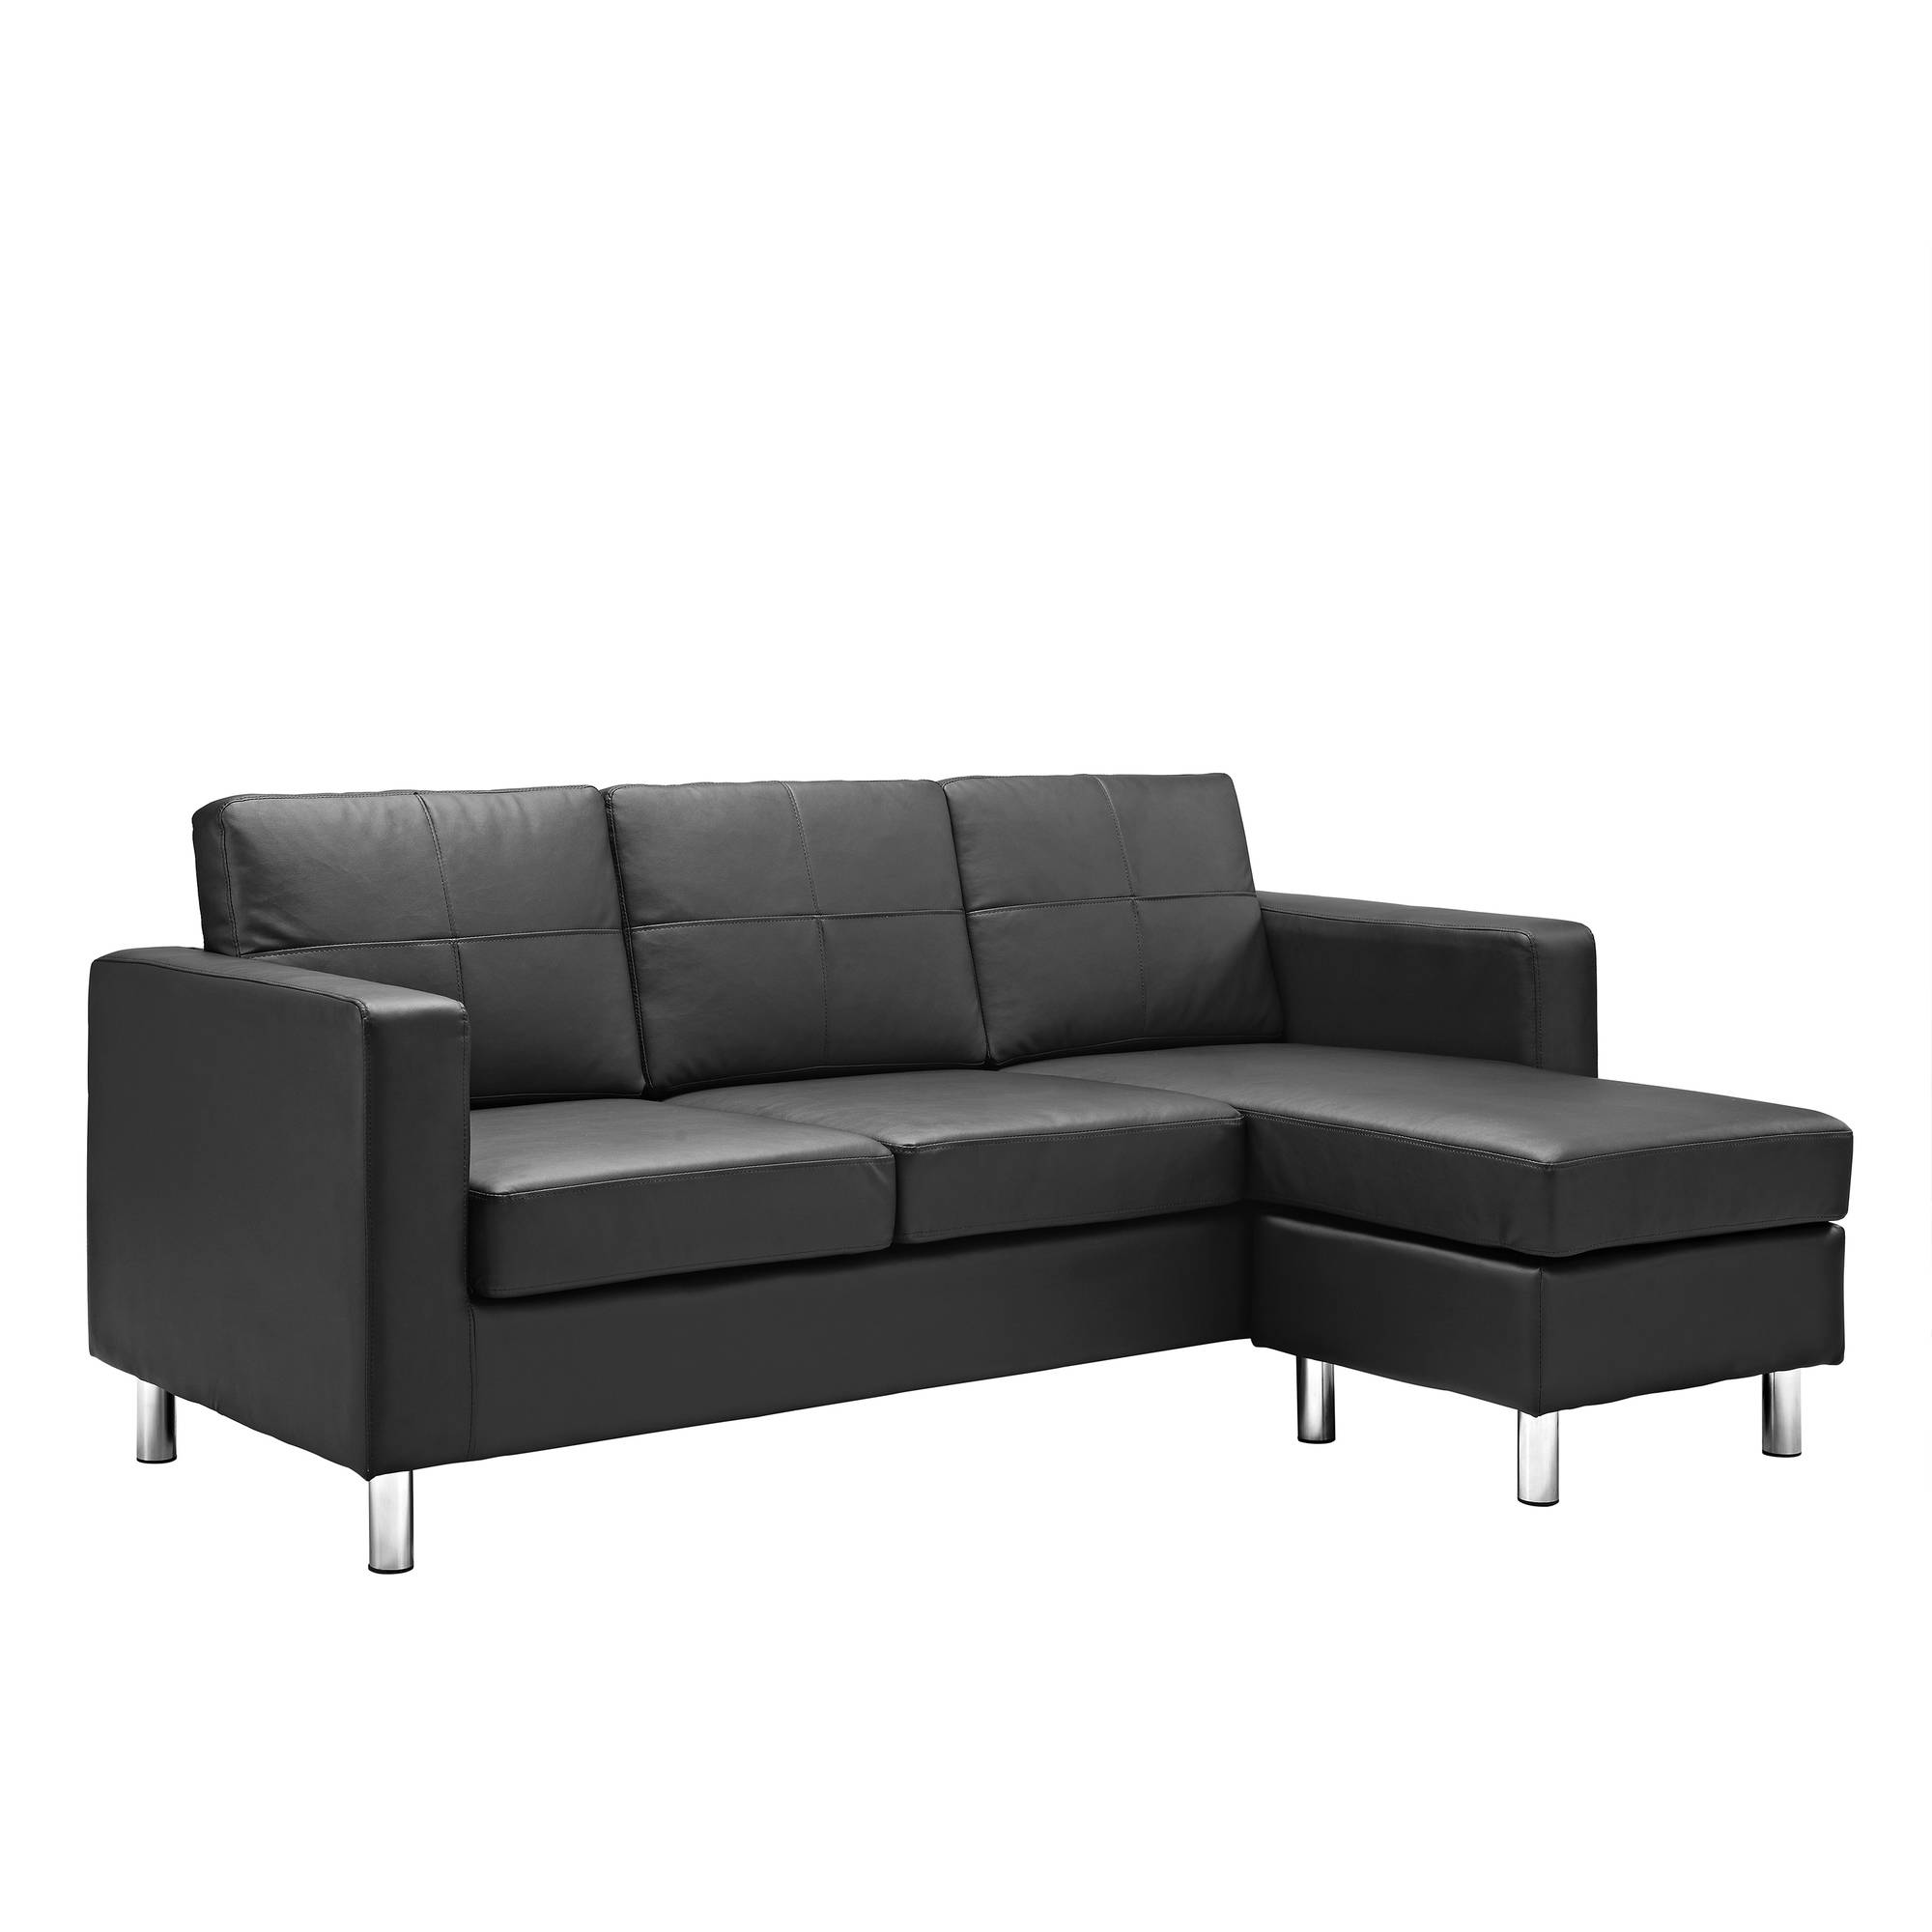 small sectional sofa dorel living small spaces configurable sectional sofa, multiple colors -  walmart.com DNZRPAU